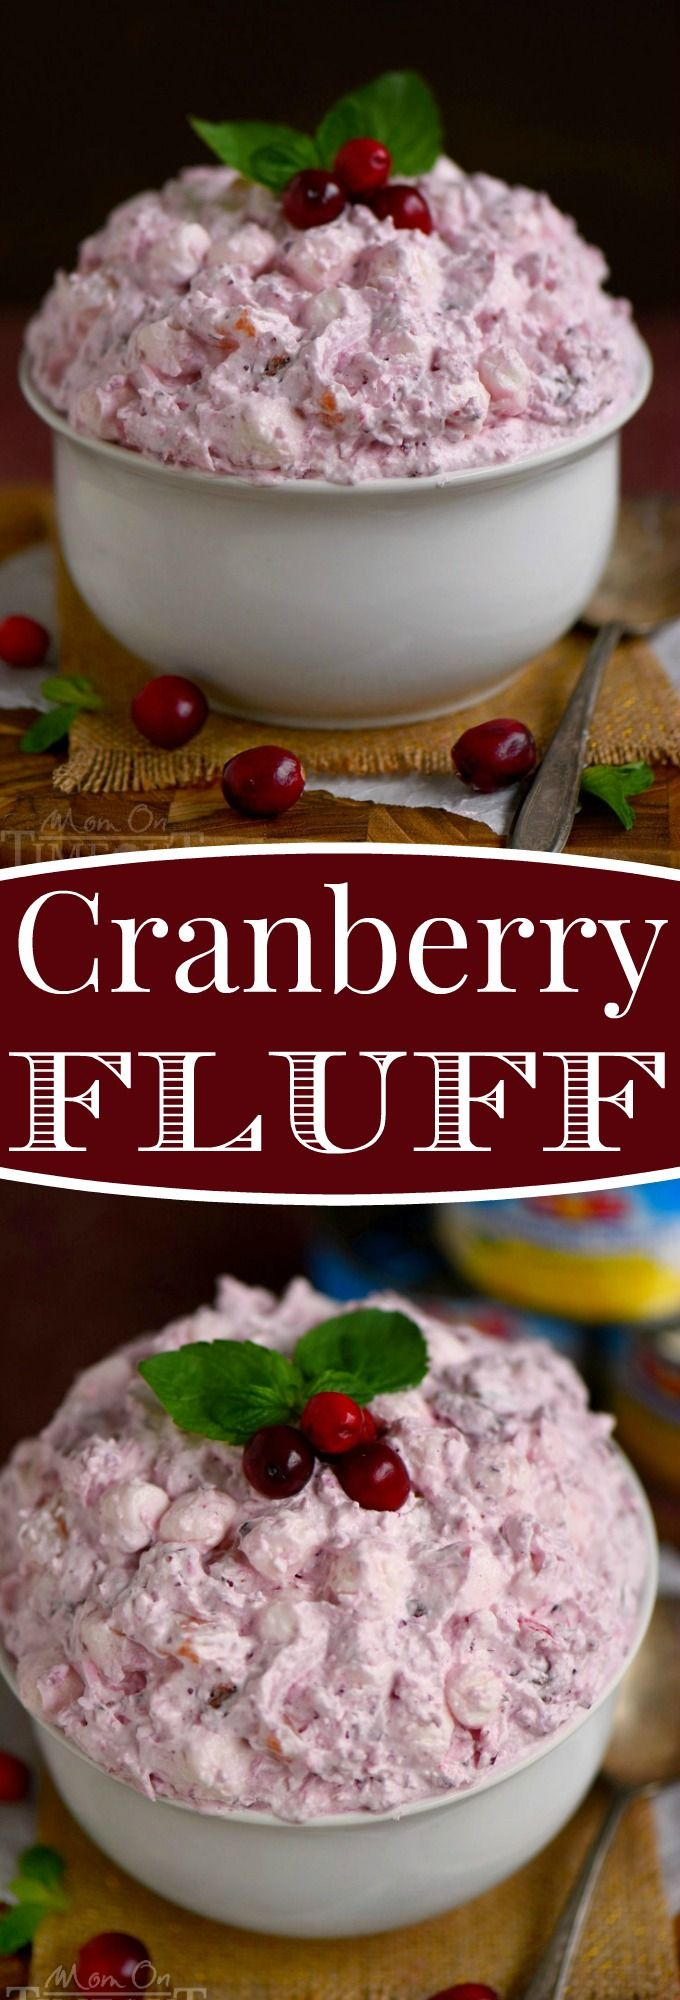 What your holiday table is missing! This Easy Cranberry Fluff is an amazing dessert salad made with cranberries, pineapples, coconut and marshmallows. No one can resist this beautiful and scrumptious dessert! #ChainofCheer #ad: